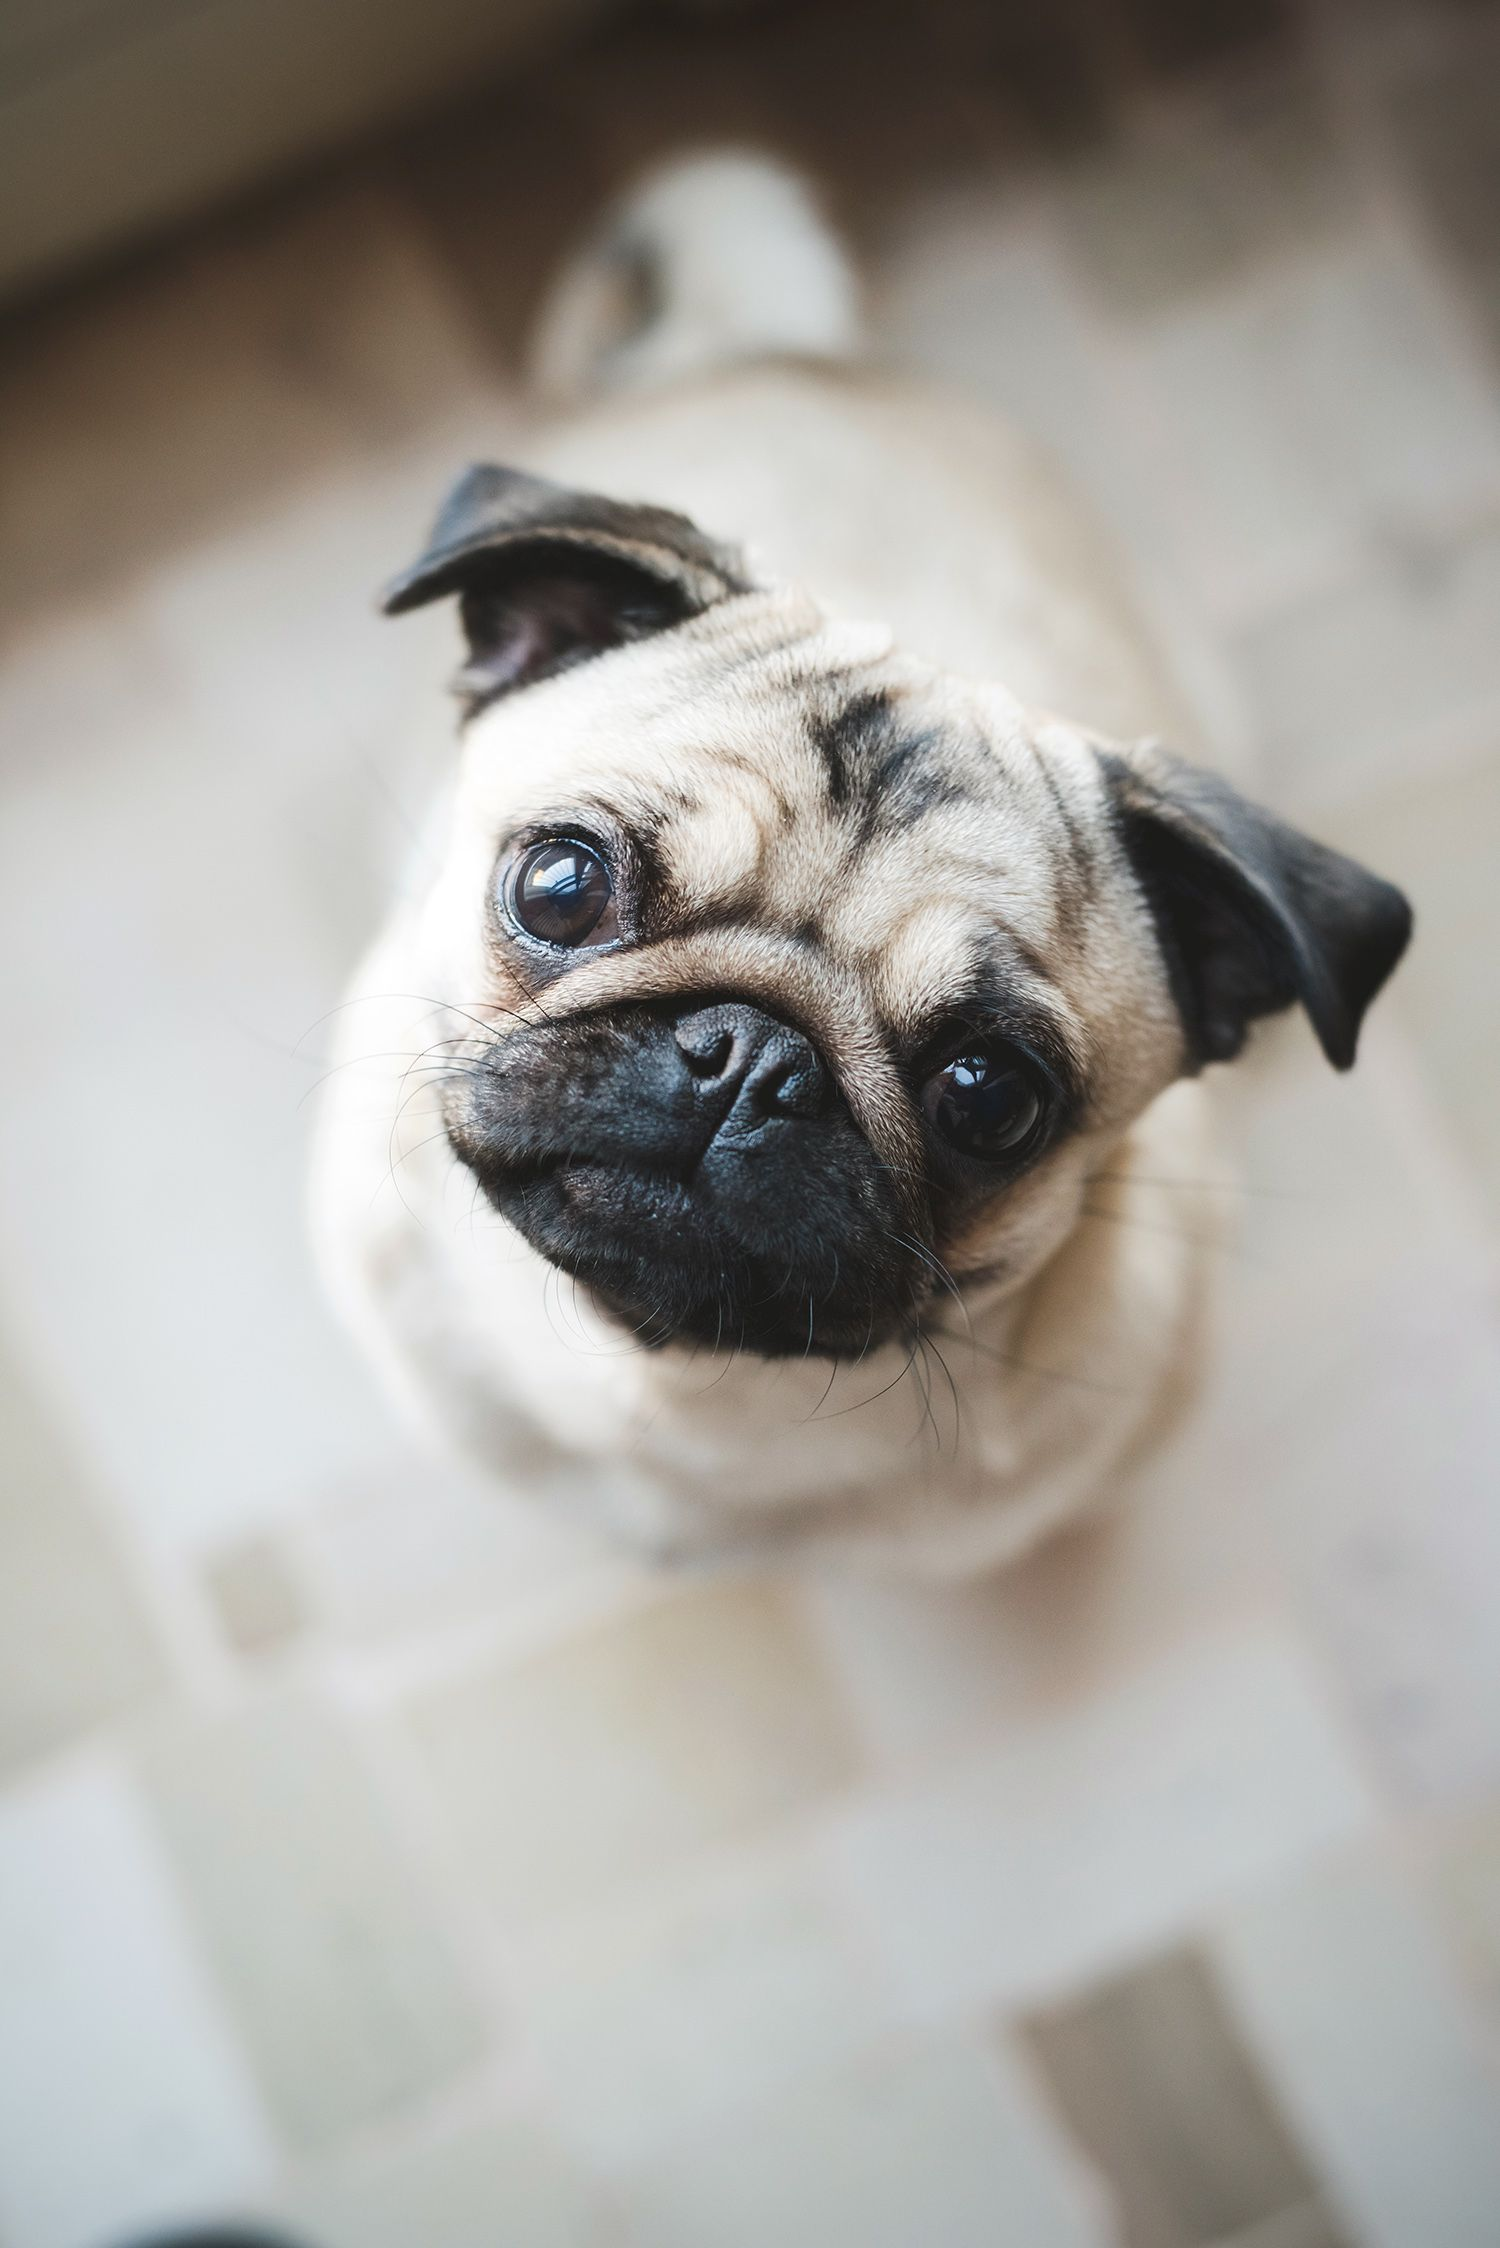 10 Overlooked Dog Breeds That Make For Great Family Pets Pug Puppies Cute Pugs Puppies